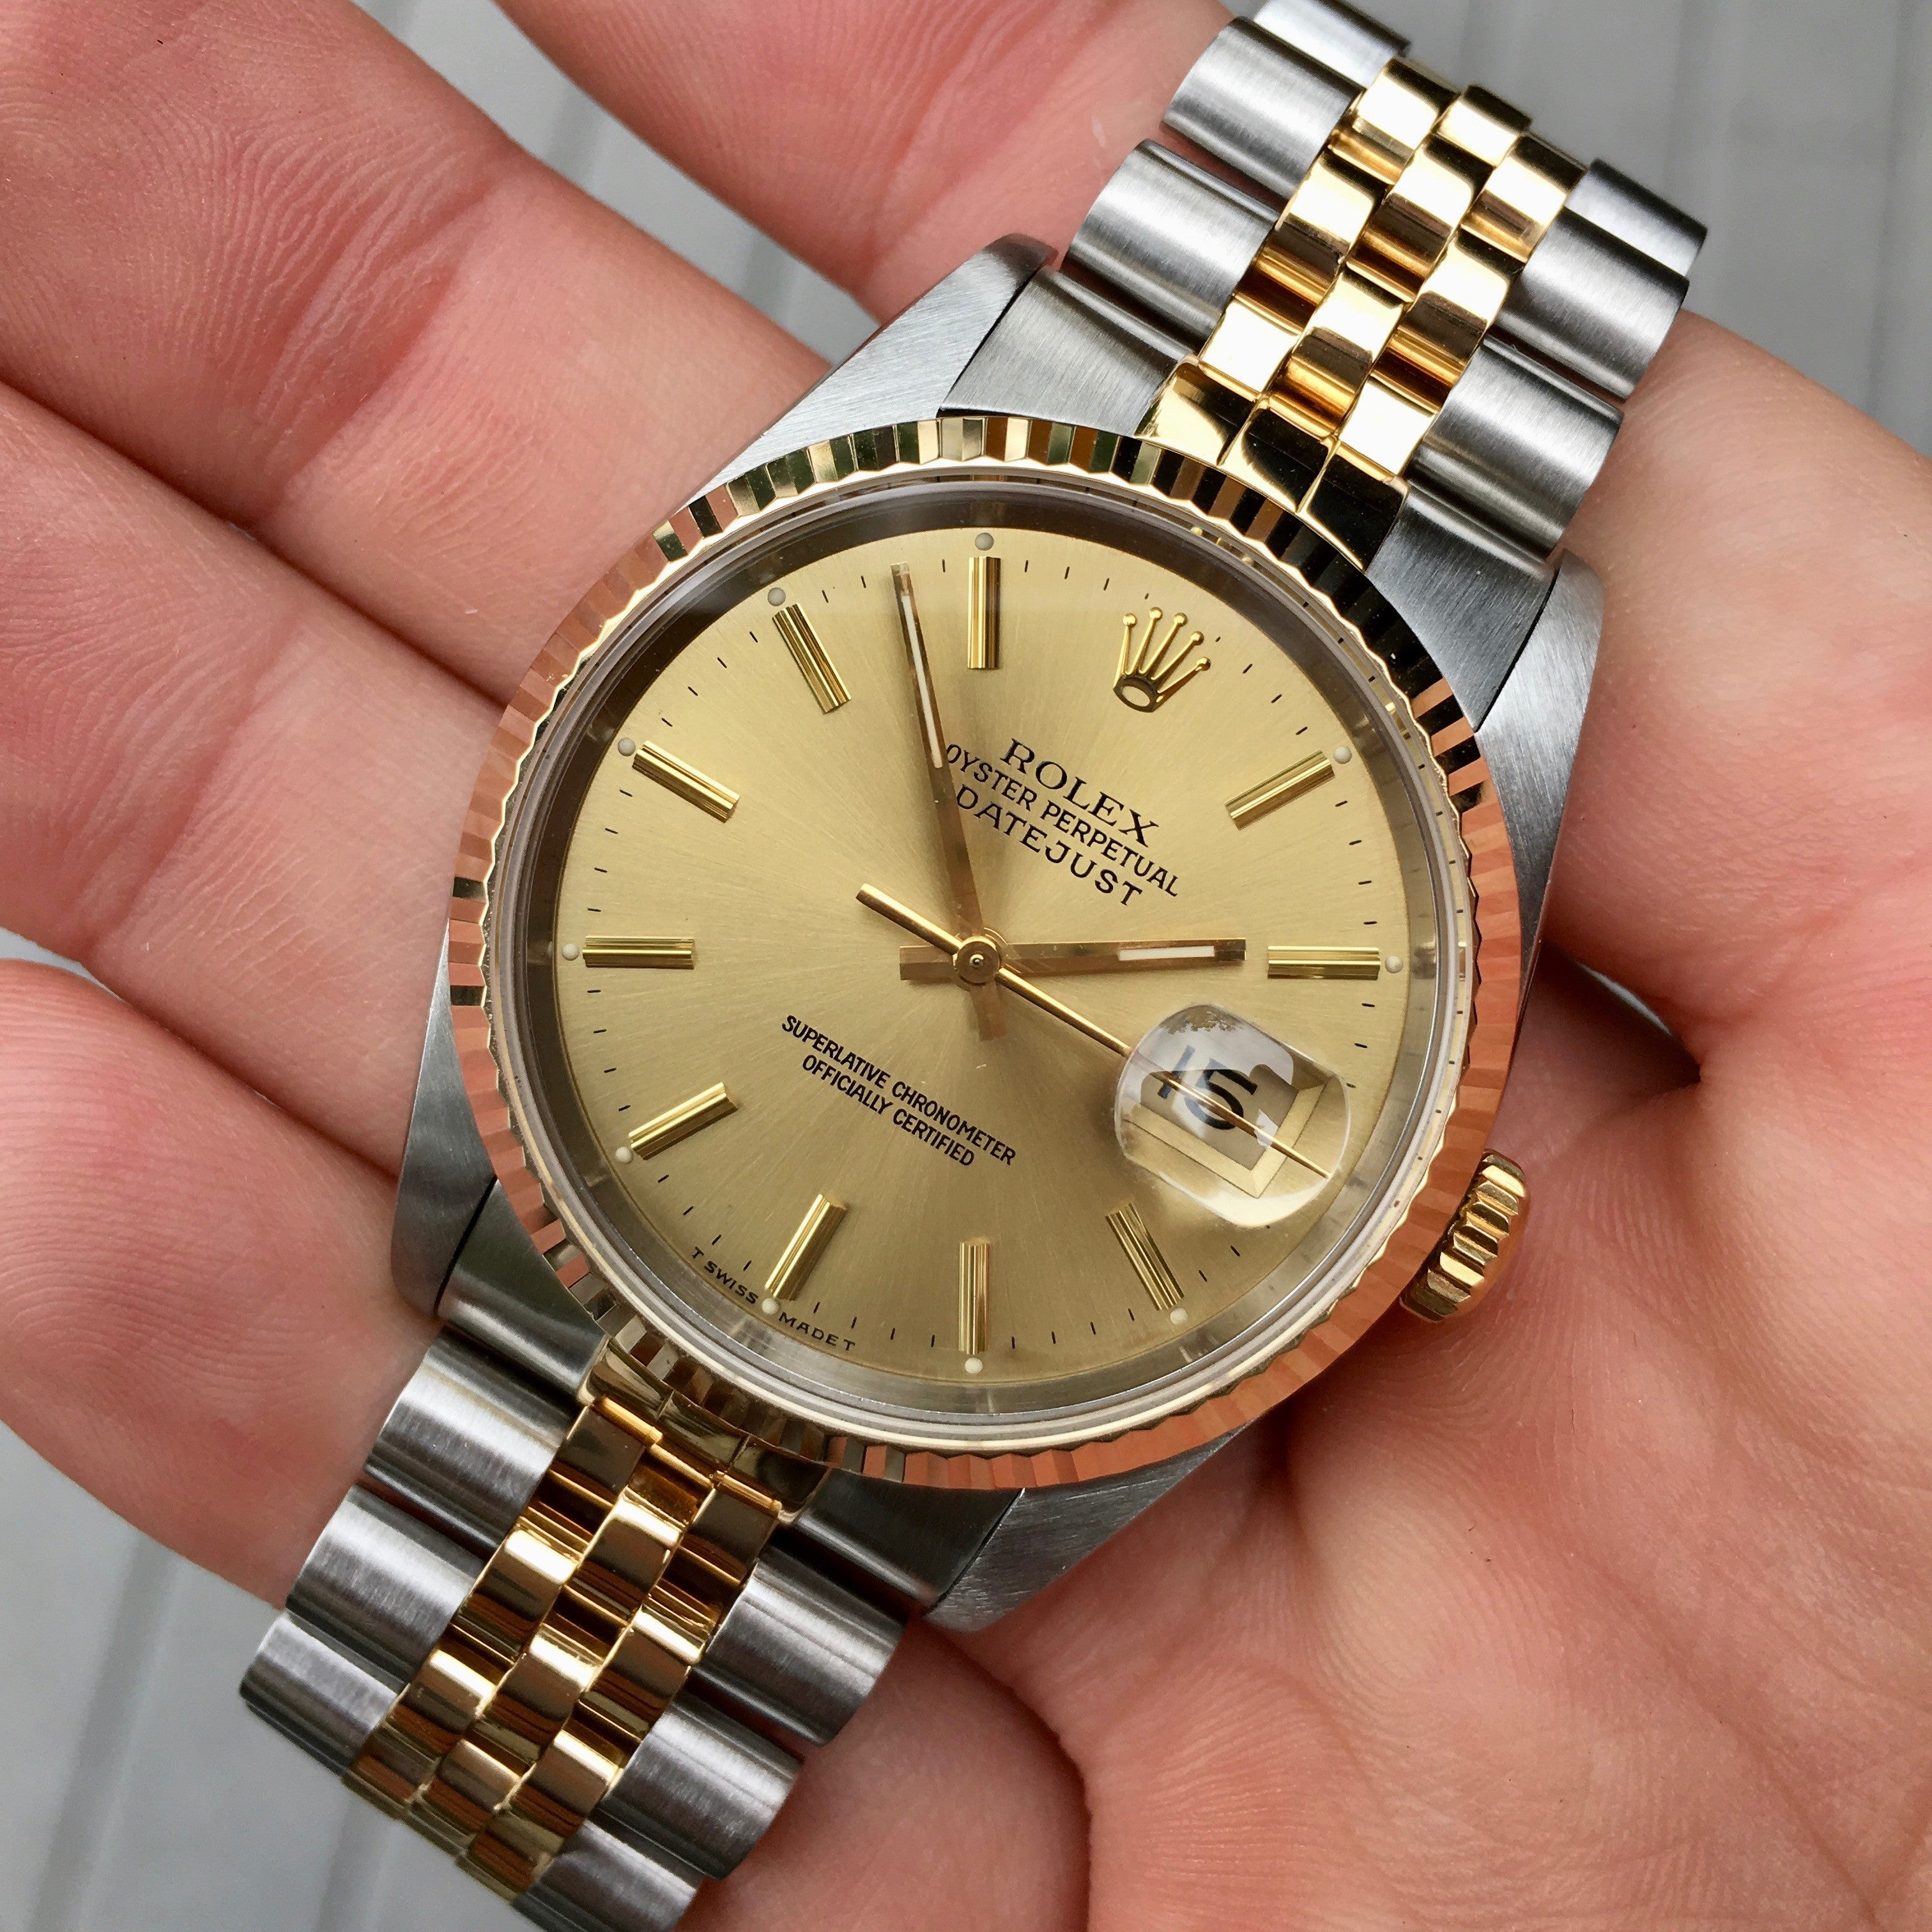 Rolex Datejust 16233 Two Tone Champagne Stick Automatic Wristwatch Circa 1991 - Hashtag Watch Company